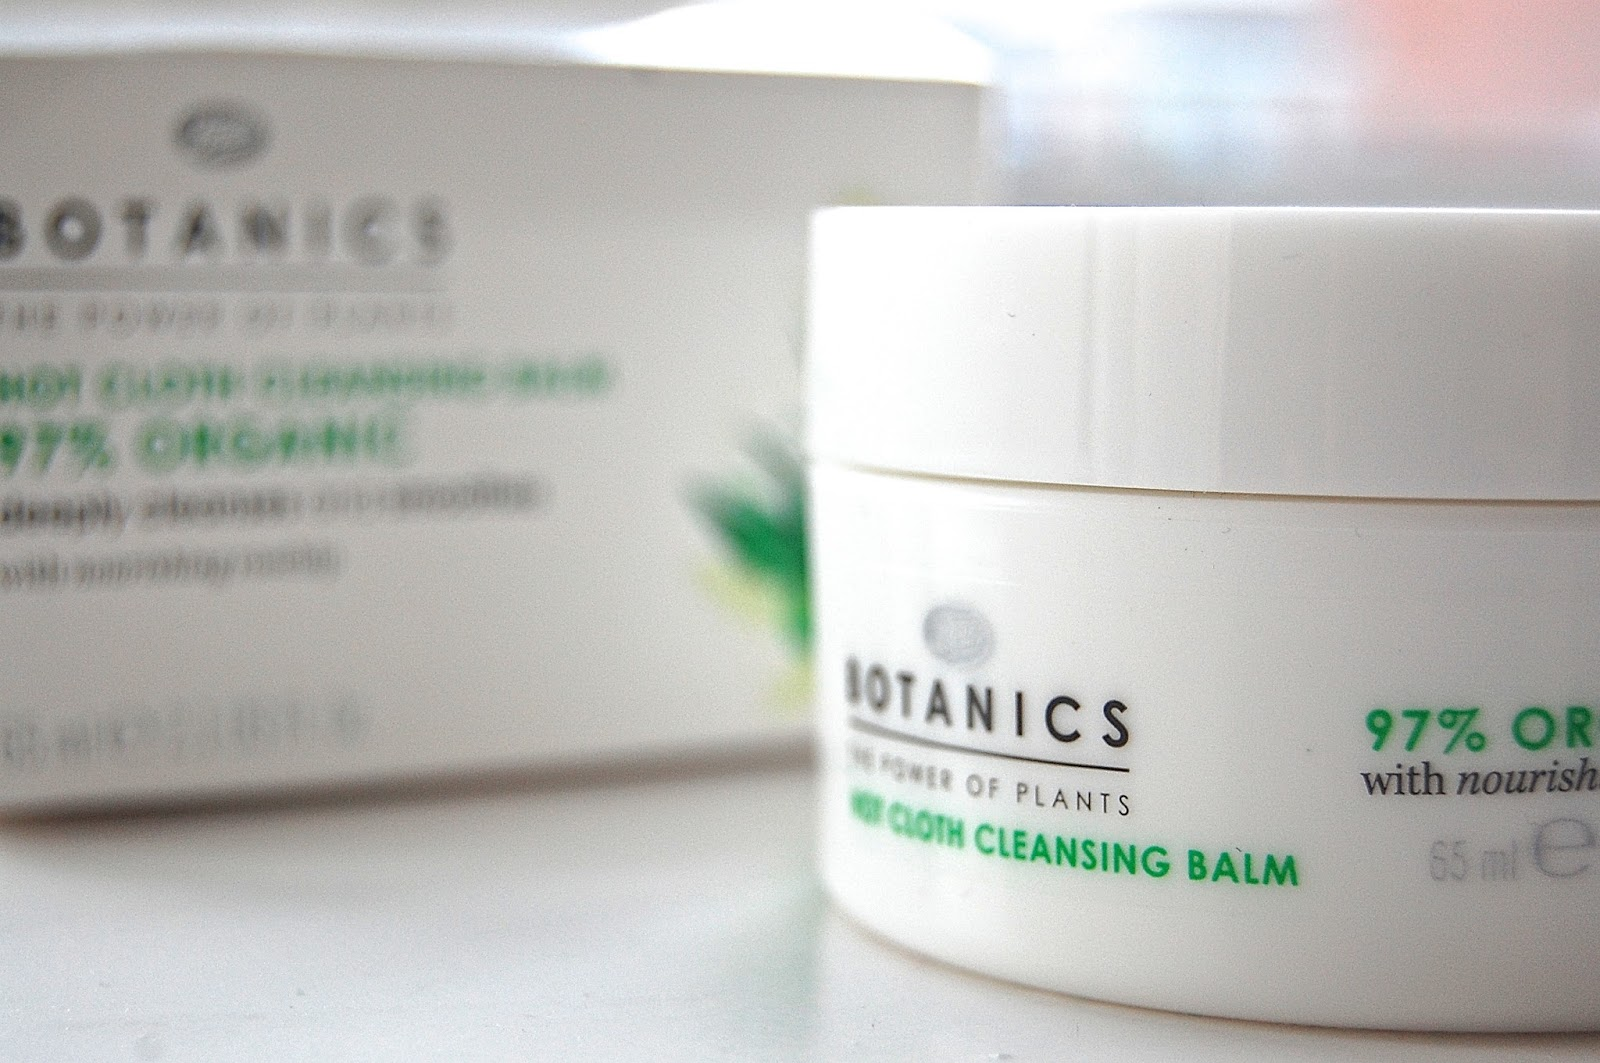 Botanics Hot Cloth Cleansing Balm